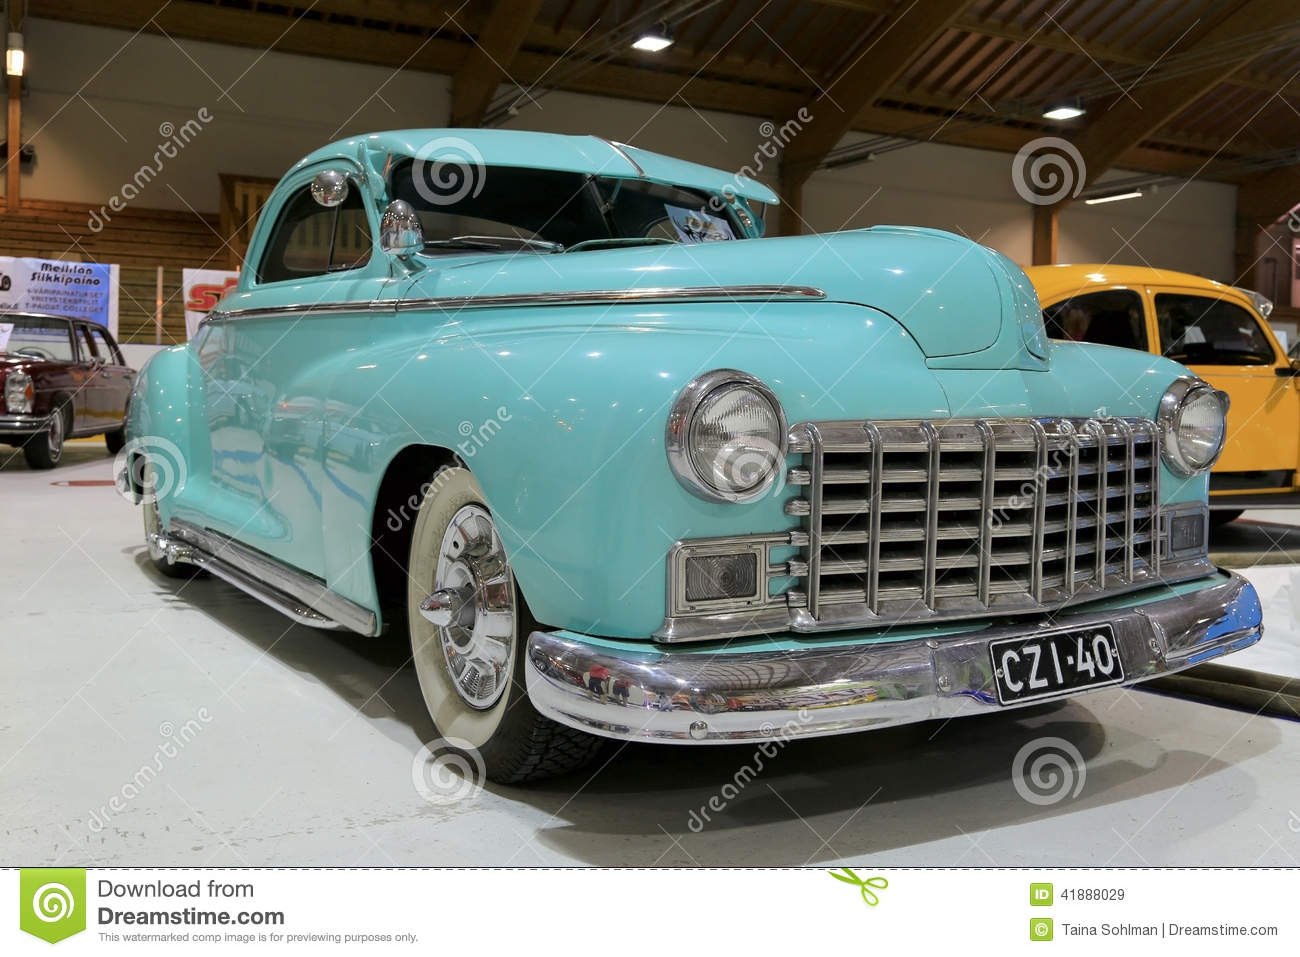 4.7 Dodge Motor >> Dodge Business Coupe 1946 Classic Car Editorial Stock Image - Image: 41888029